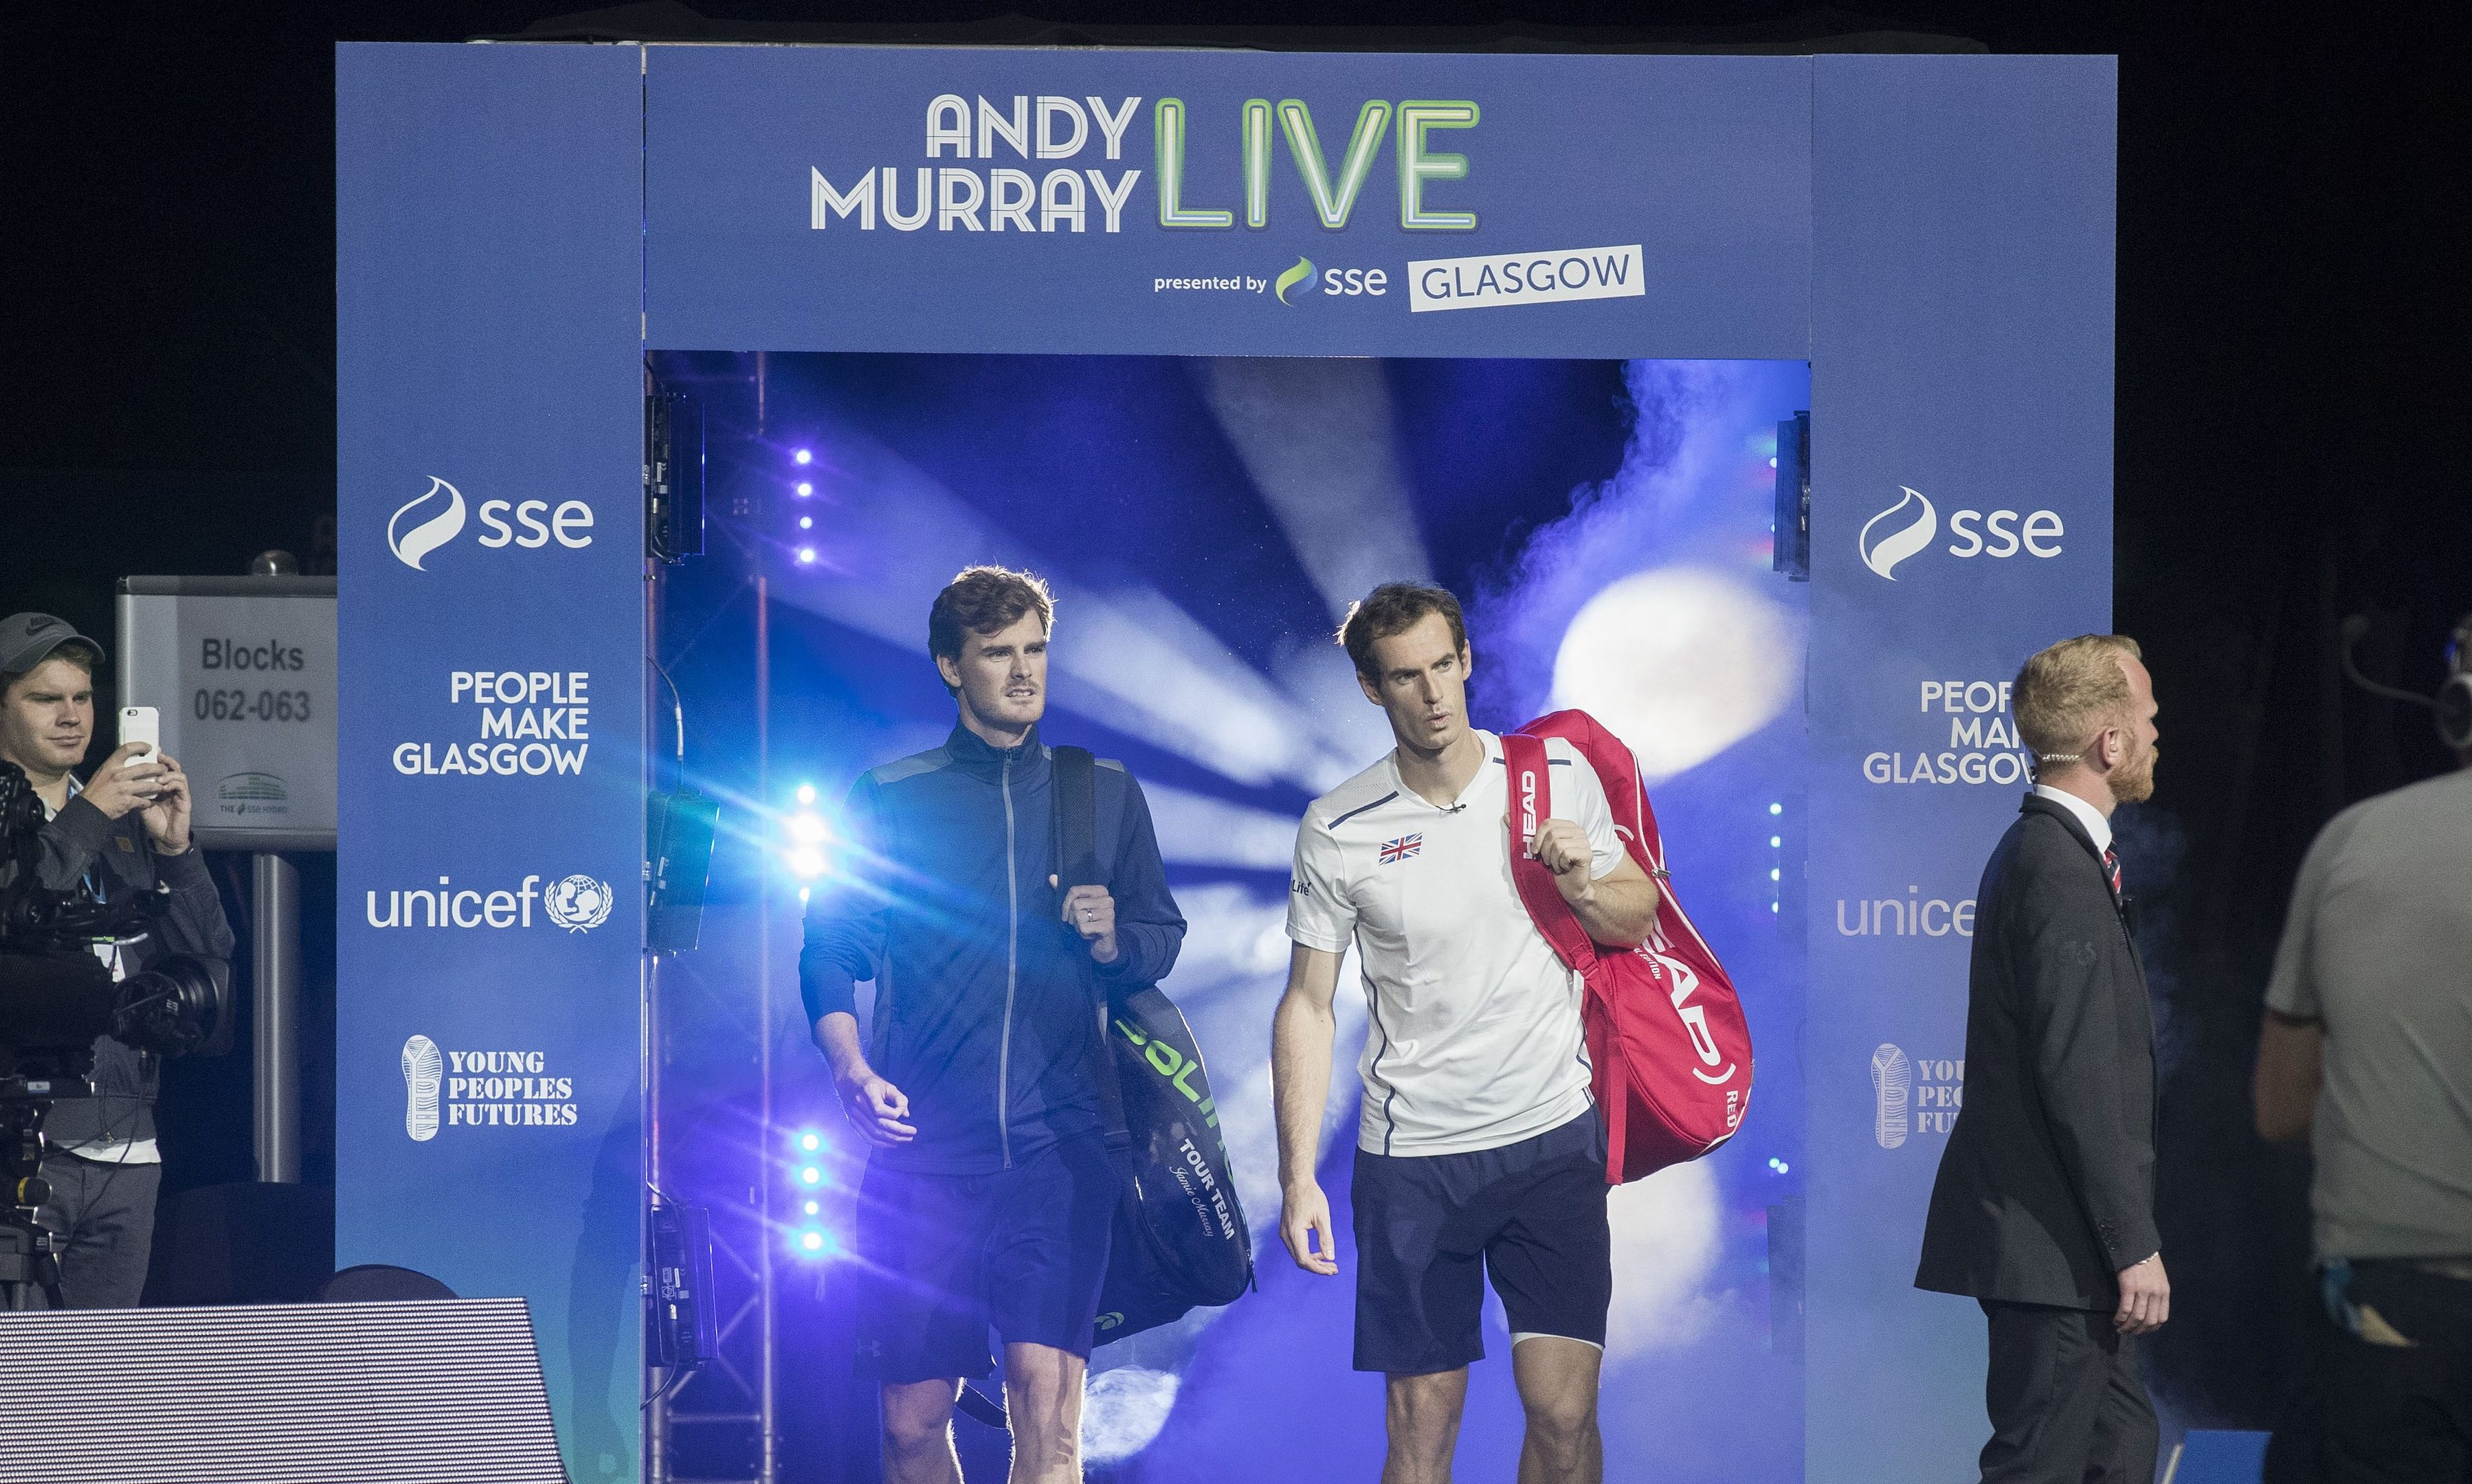 Jamie Murray and Andy Murray walk on to court during Andy Murray Live in September.